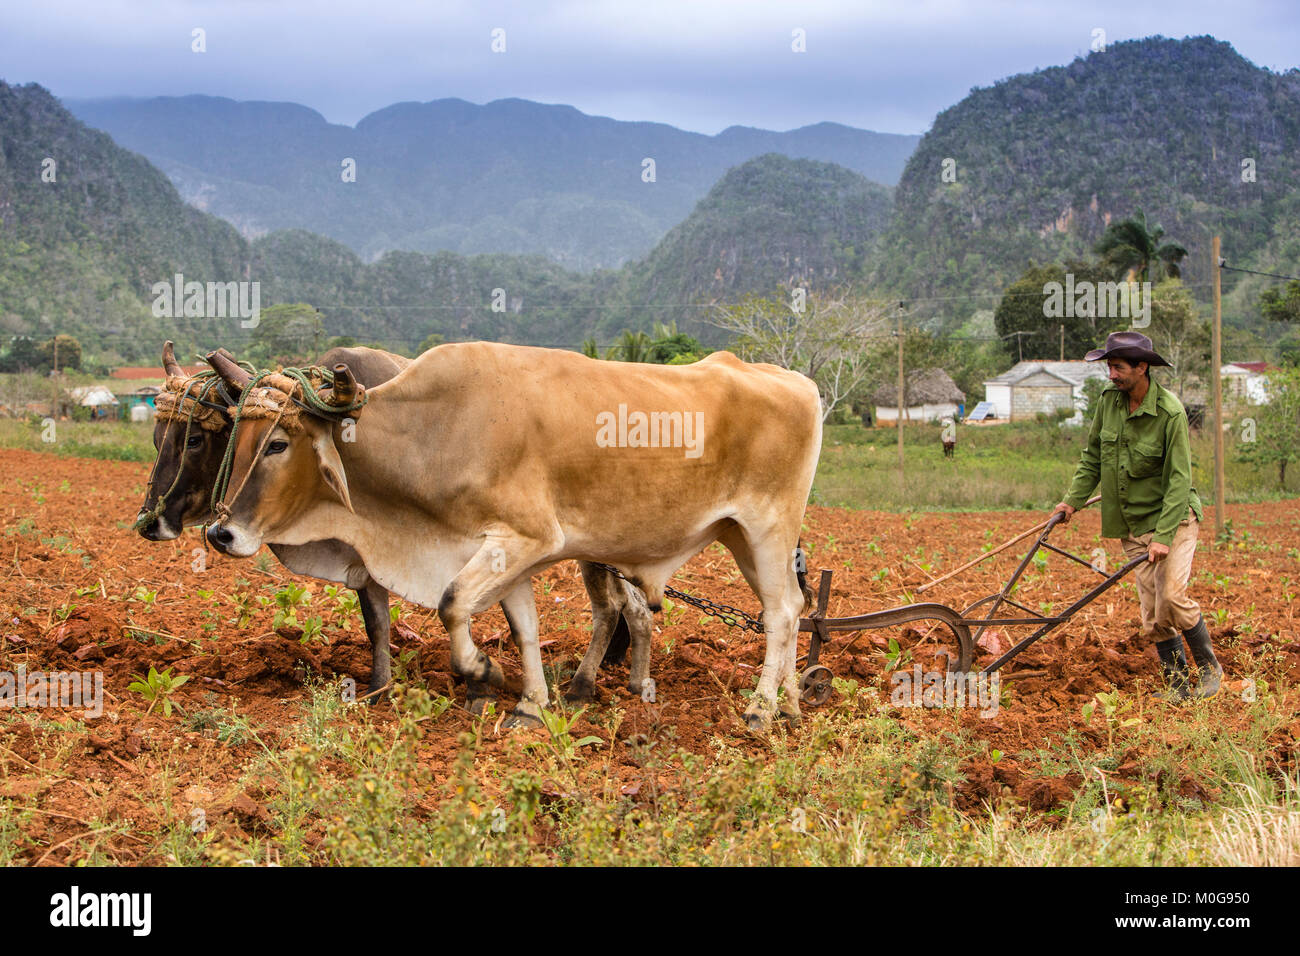 Plowing tobacco fields in Vinales Valley, Cuba - Stock Image